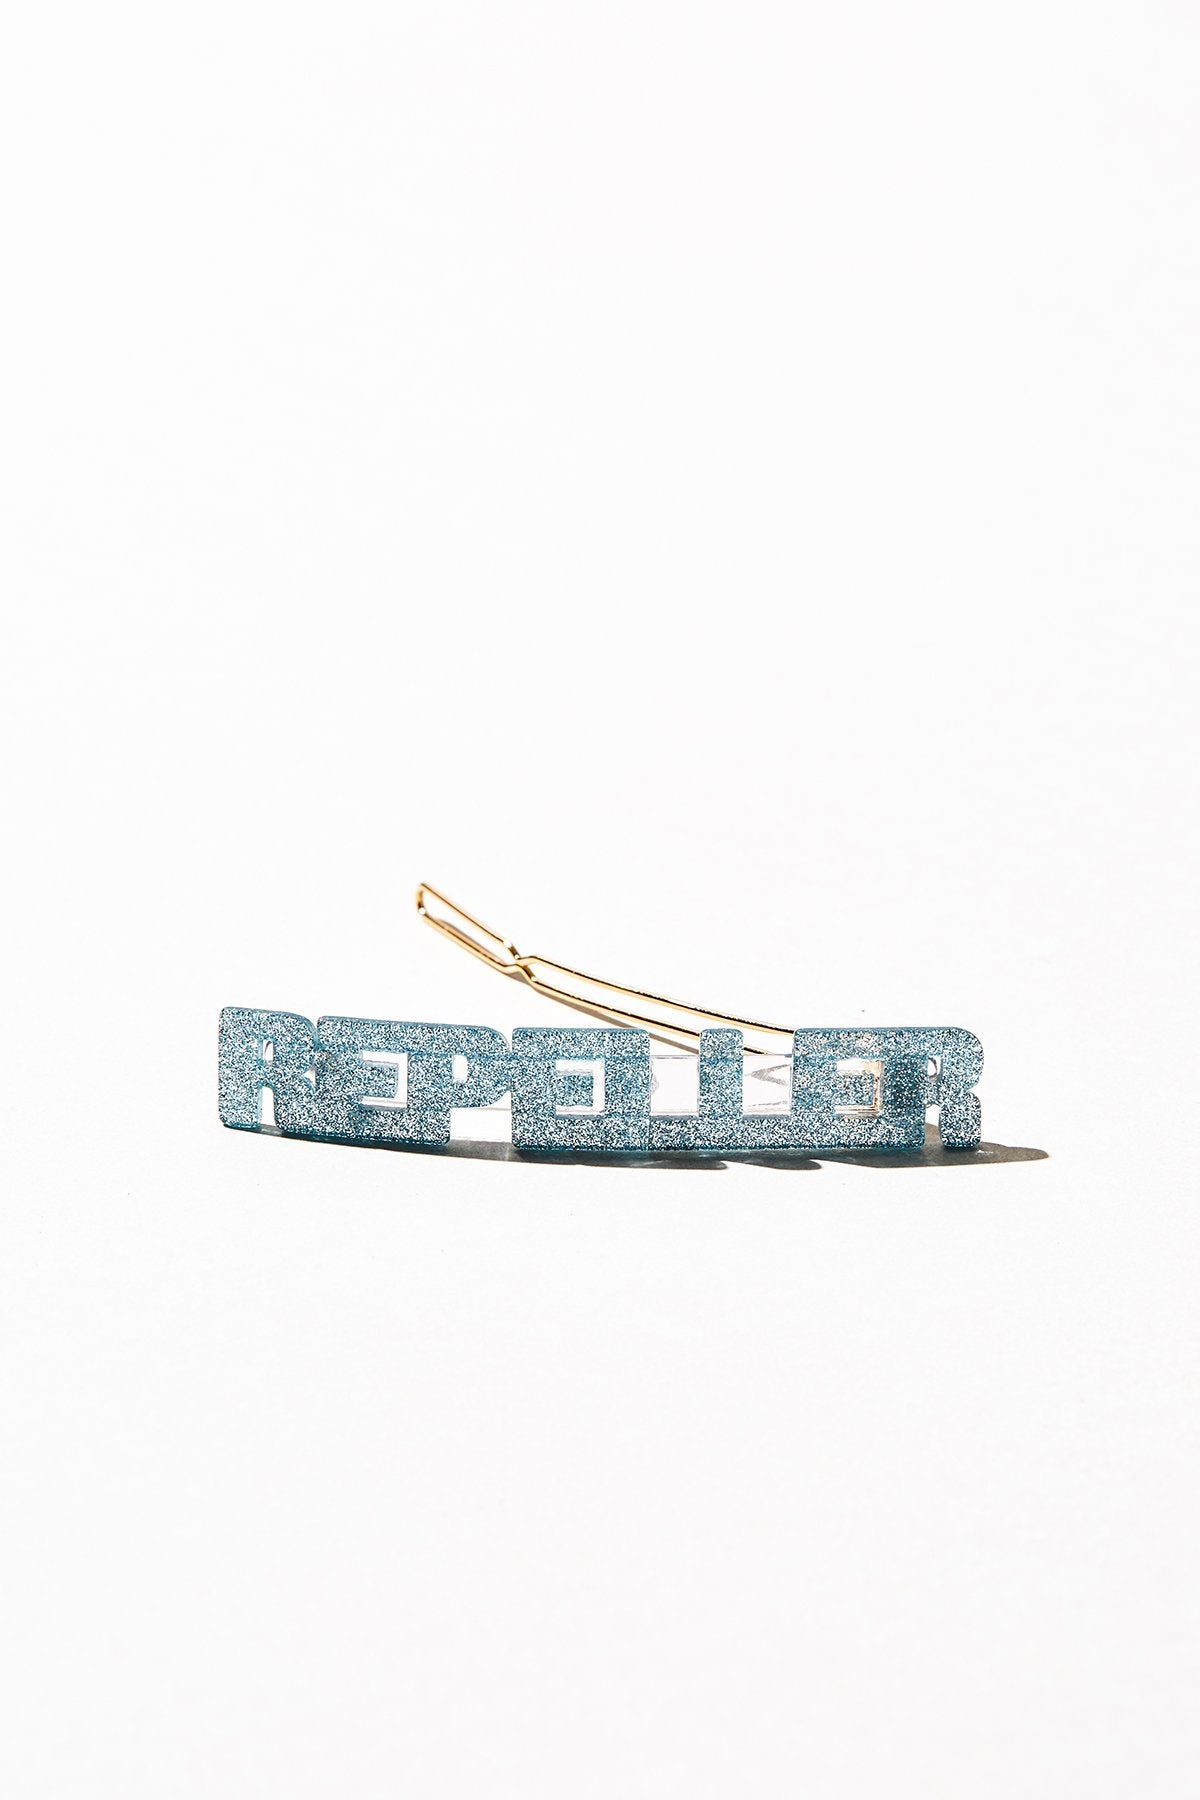 Repeller Flagpole - Blue Glitter